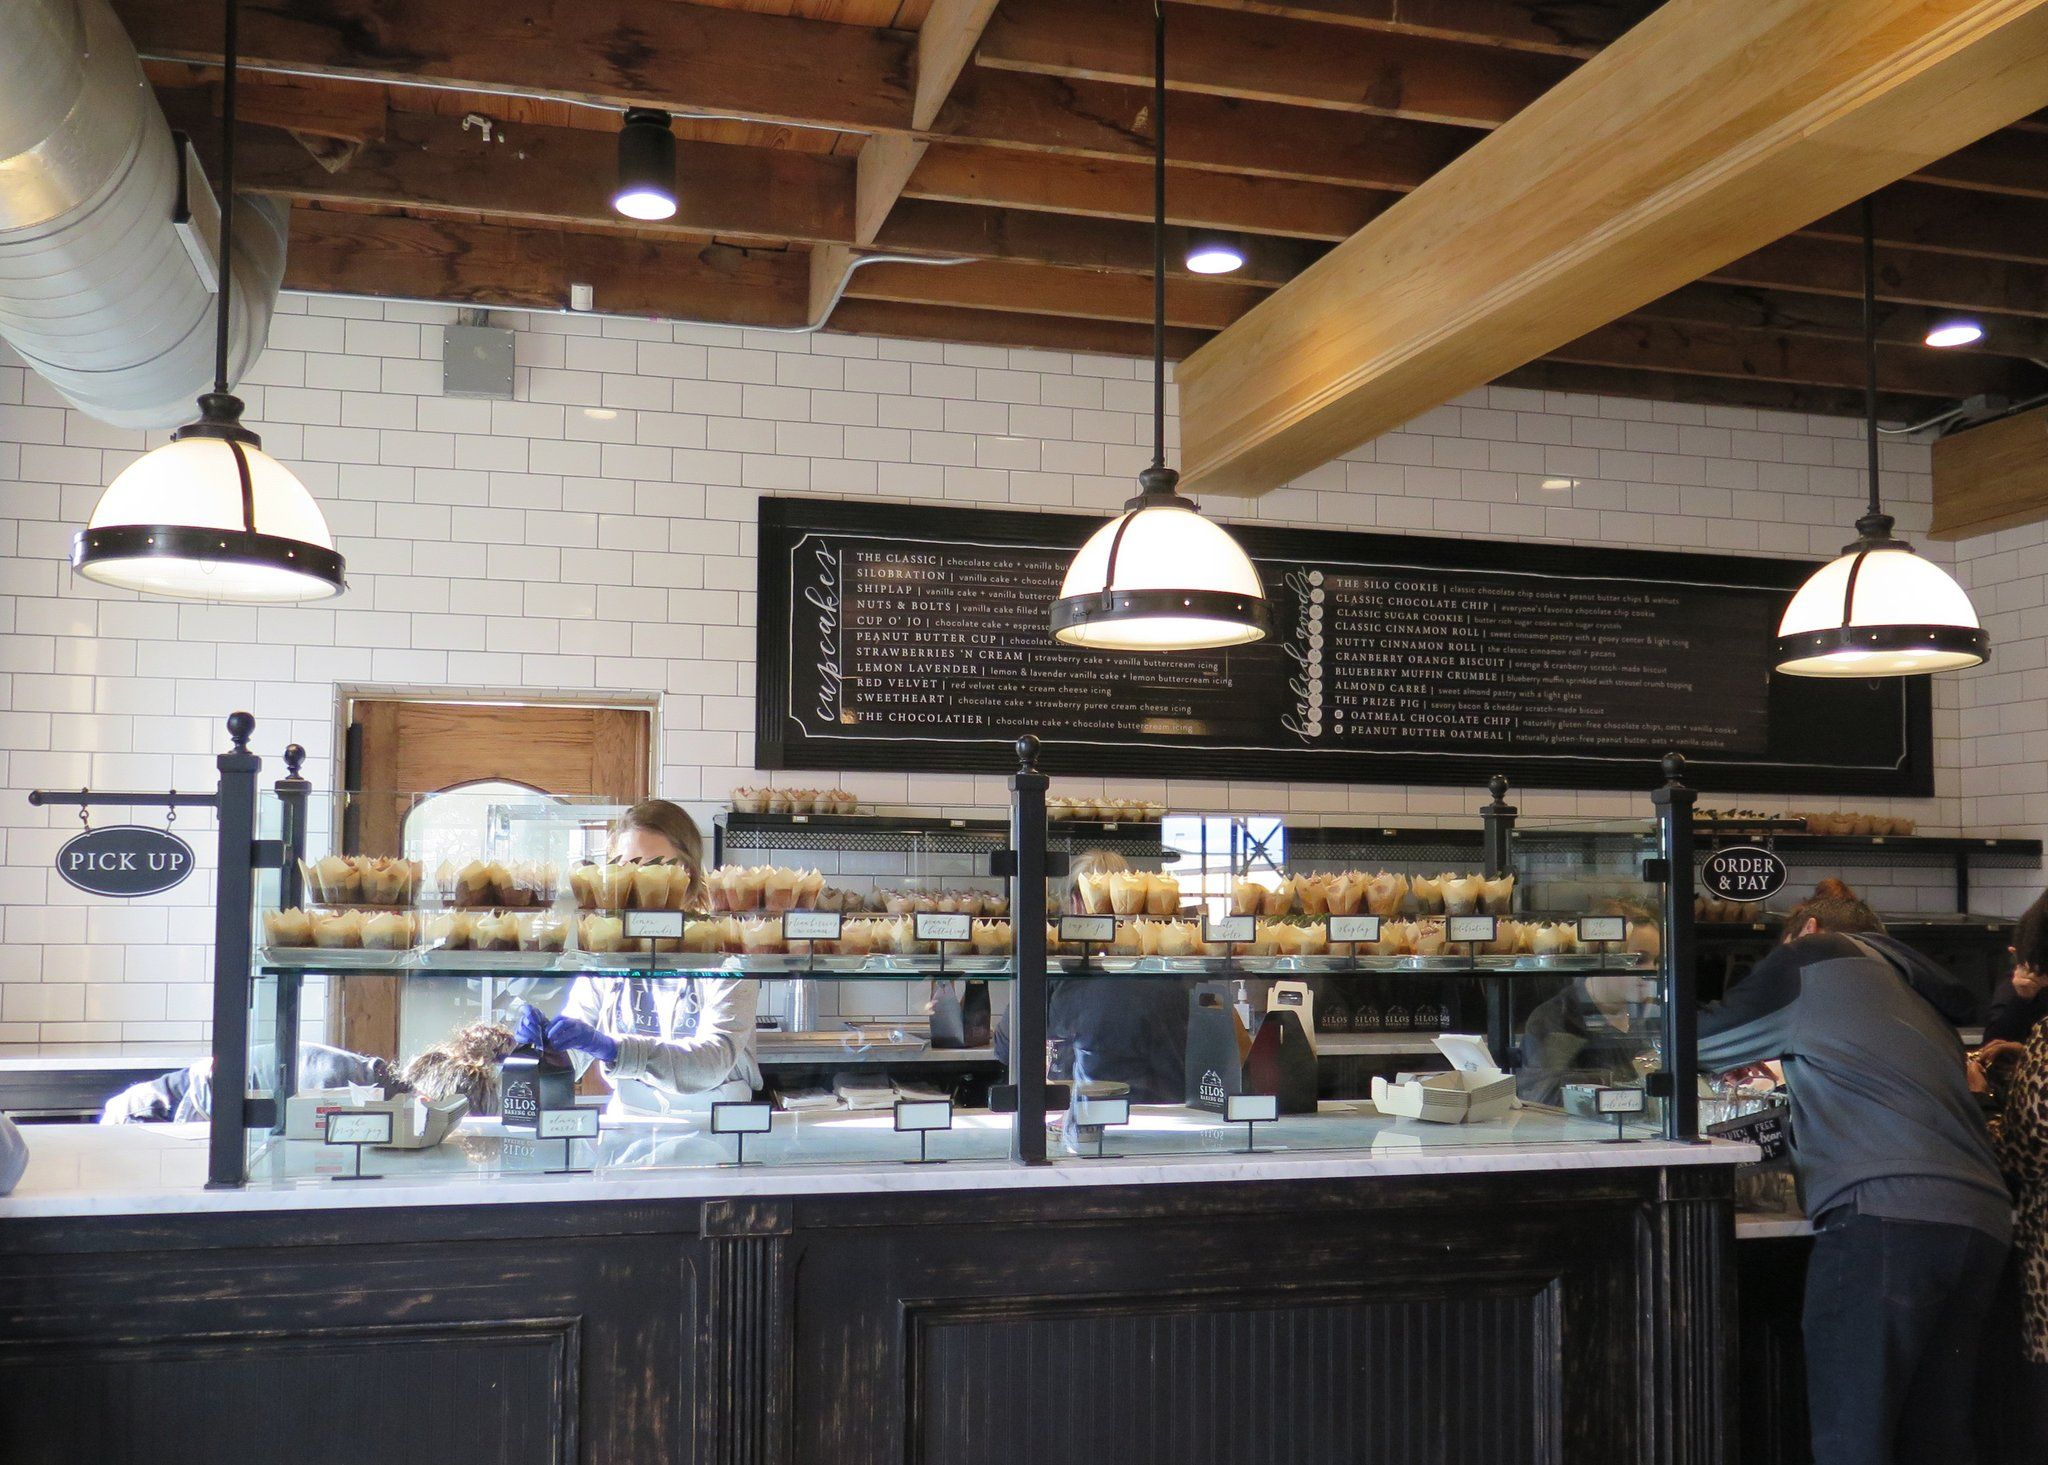 The 2 Things You Must Order At Silos Baking Co Straight From An Employee Silos Baking Co Magnolia Bakery Waco Silos Bakery